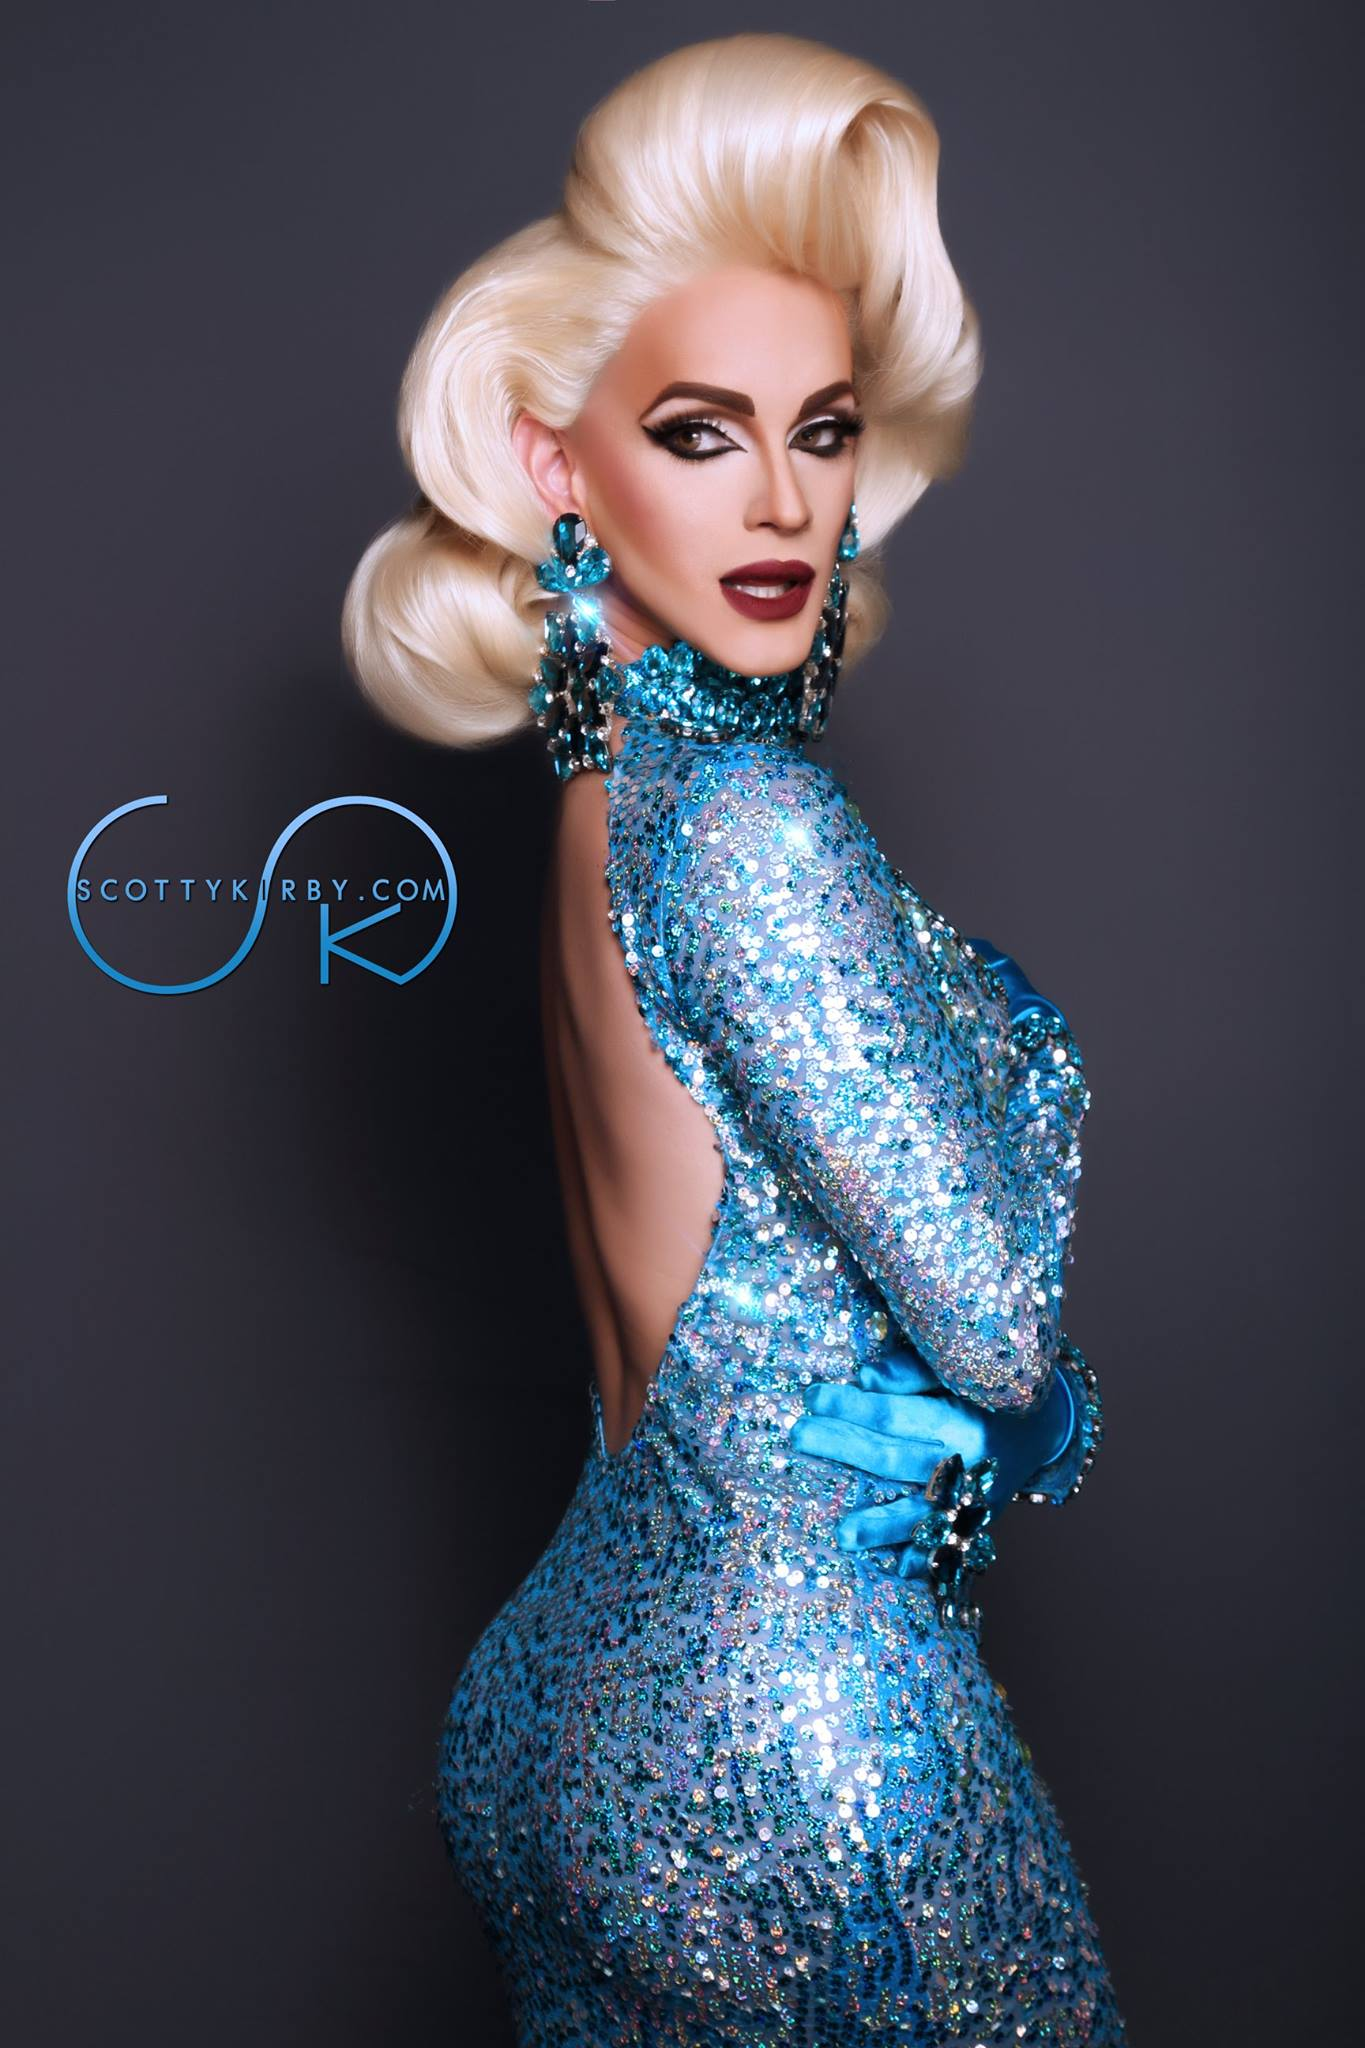 Cynthia Lee Fontaine - Photo by Scotty Kirby